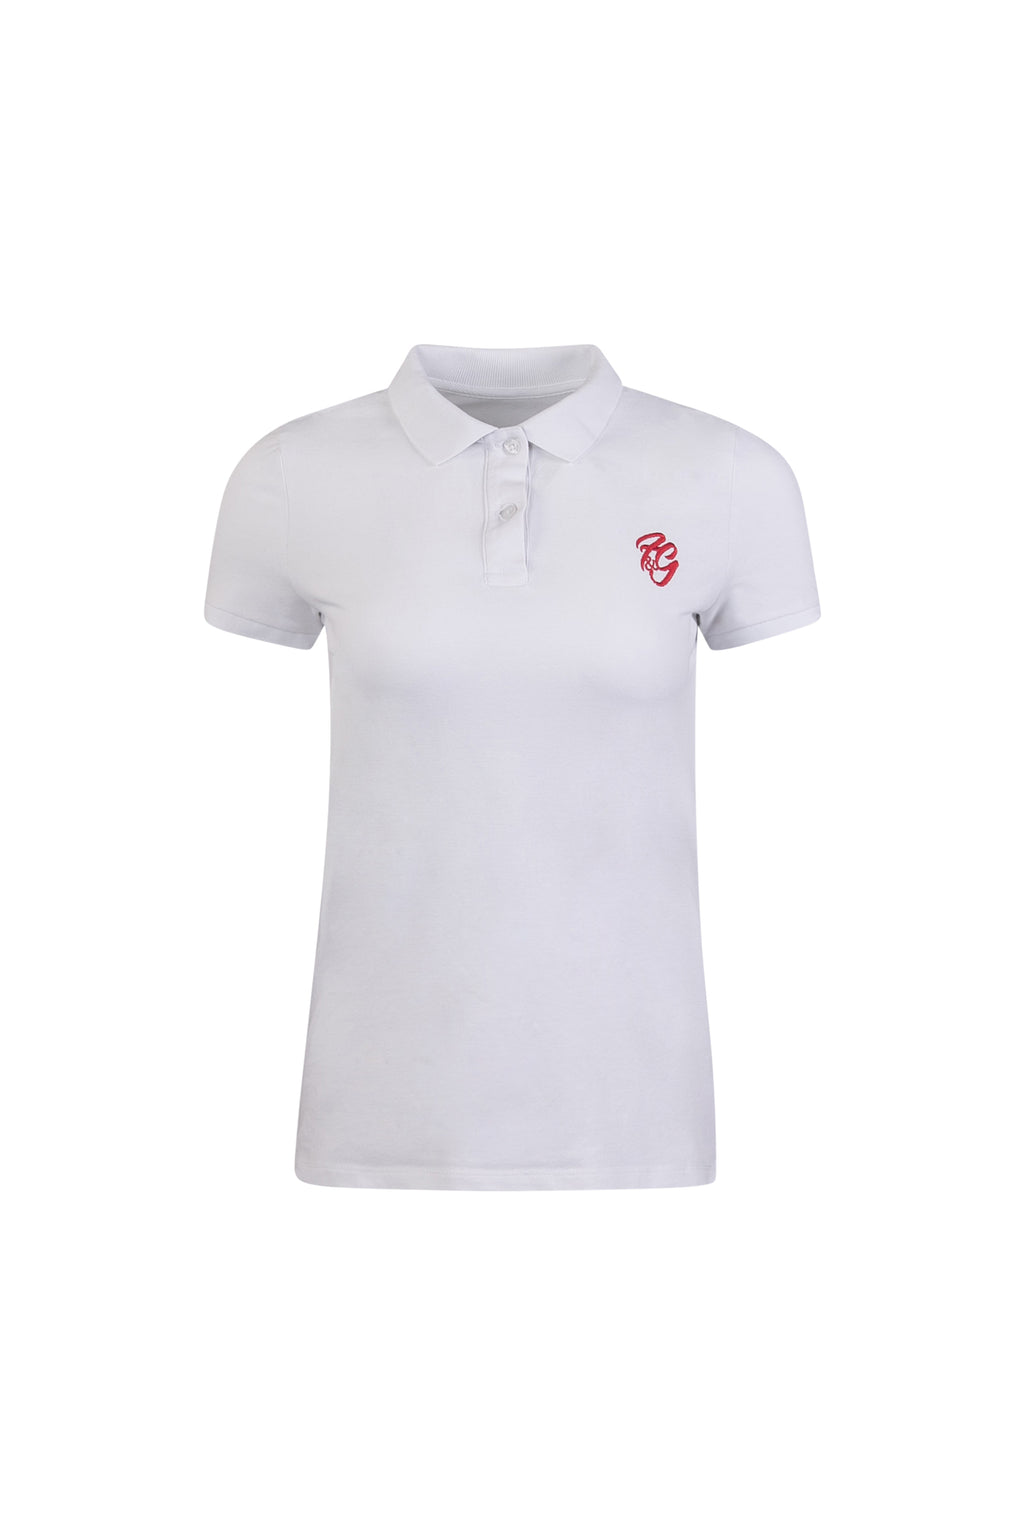 Women's Embroidered F&G Polo Shirt